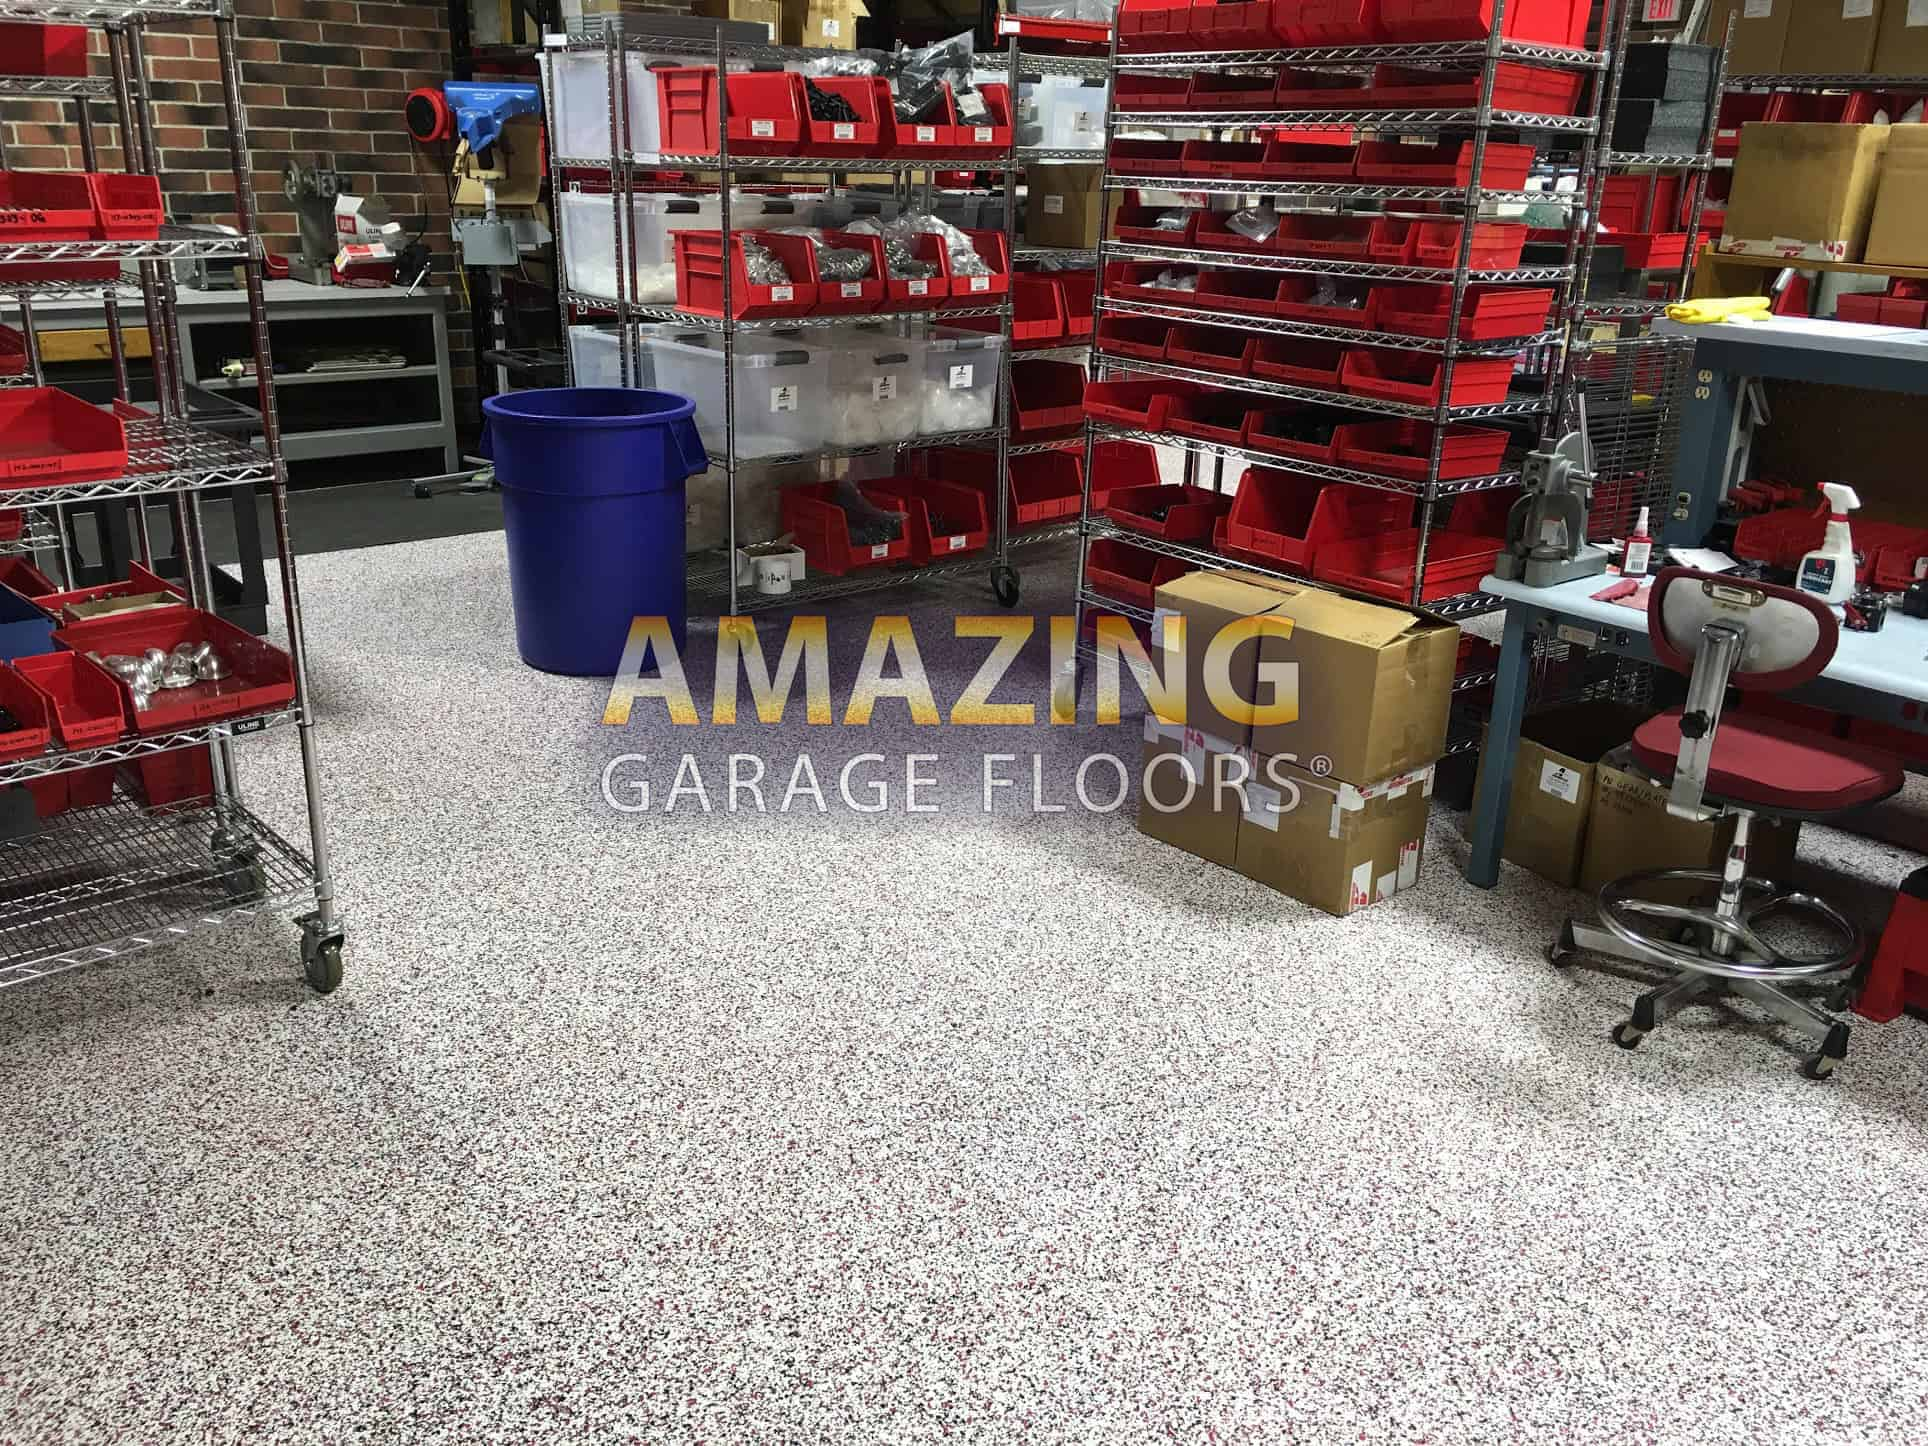 Garage Floor Epoxy Options Epoxy Finish Vs Concrete Options What S The Best Choice